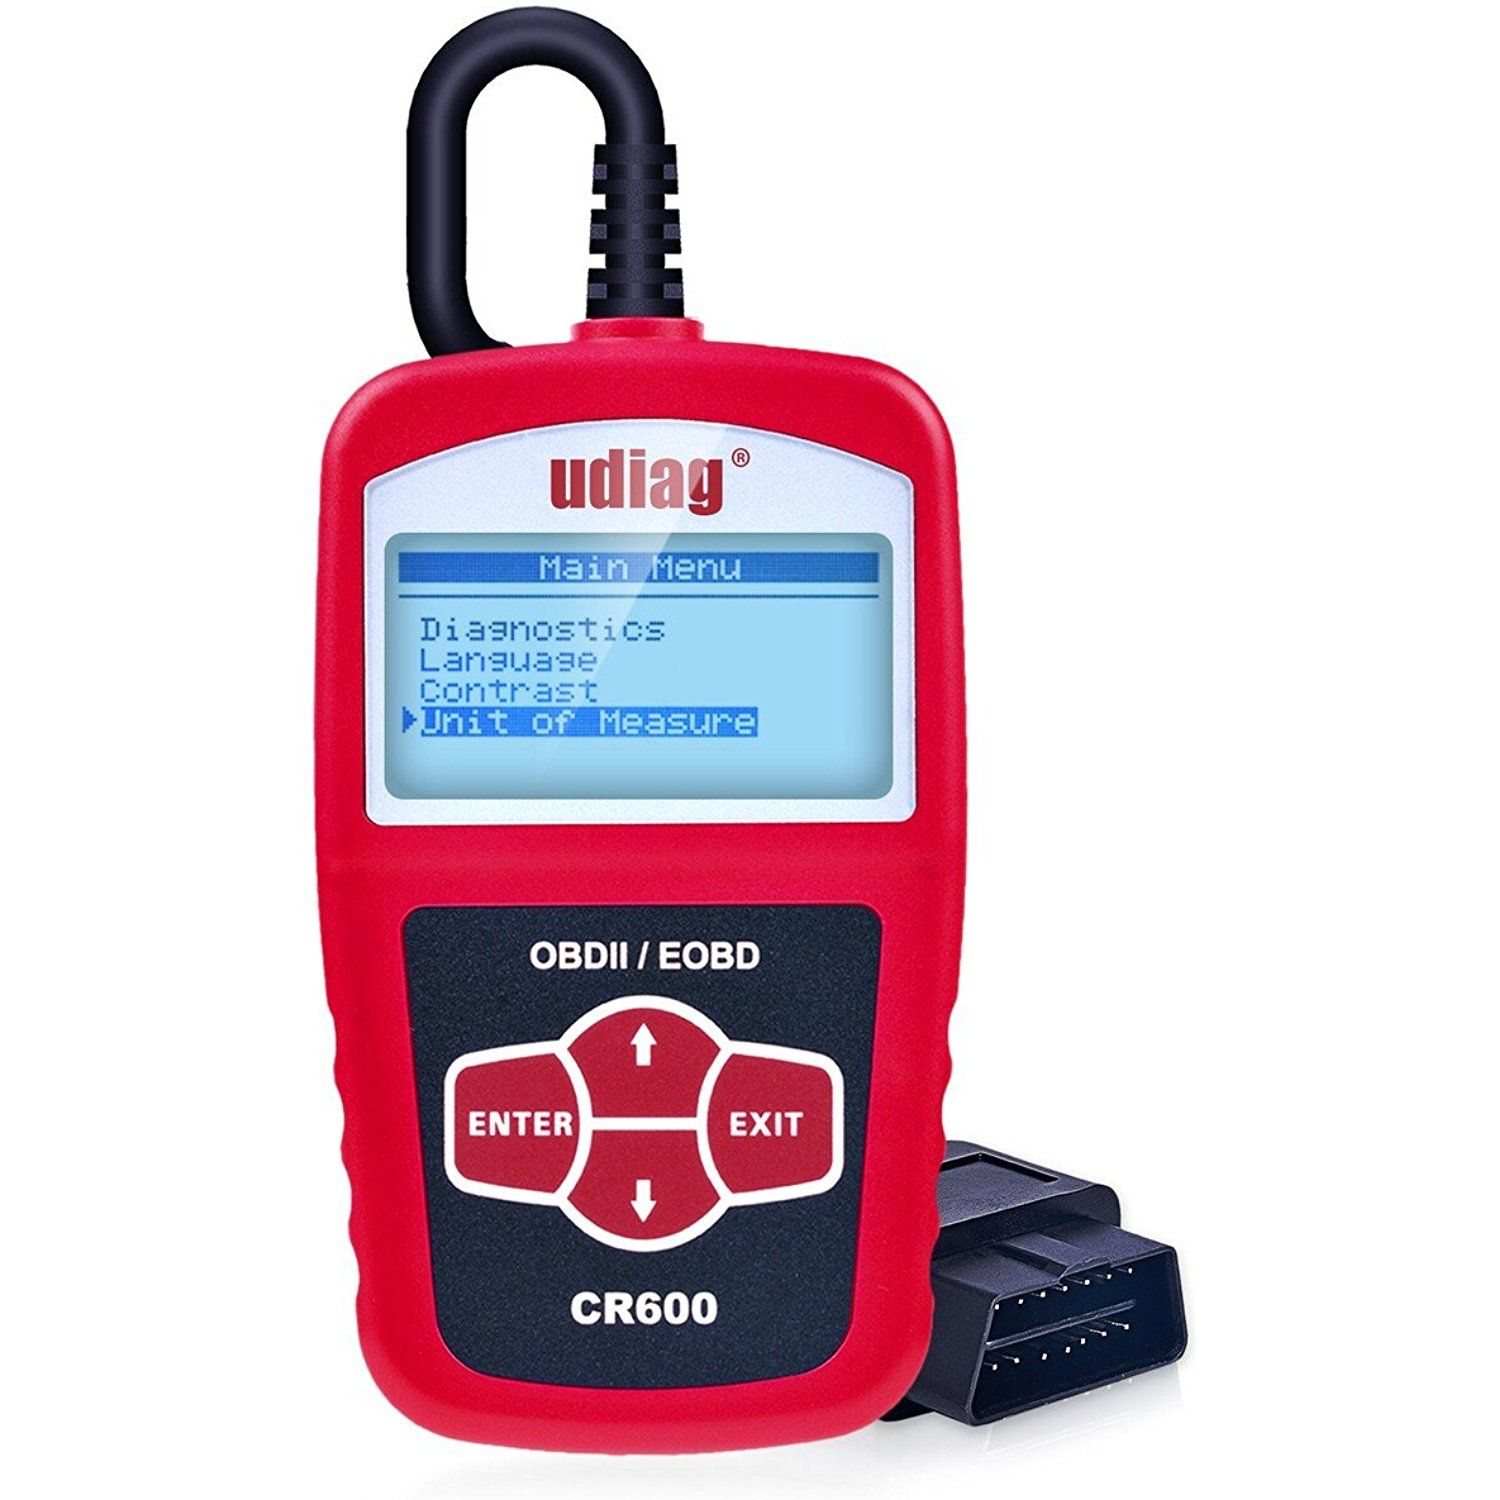 Obd2 Scanner Udiag Cr600 Auto Scanner Read Live Data And Clear Error Code For Universal Obd2 Protocol Vehicle Obd2 Scanner Car Diagnostic Tool Diagnostic Tool